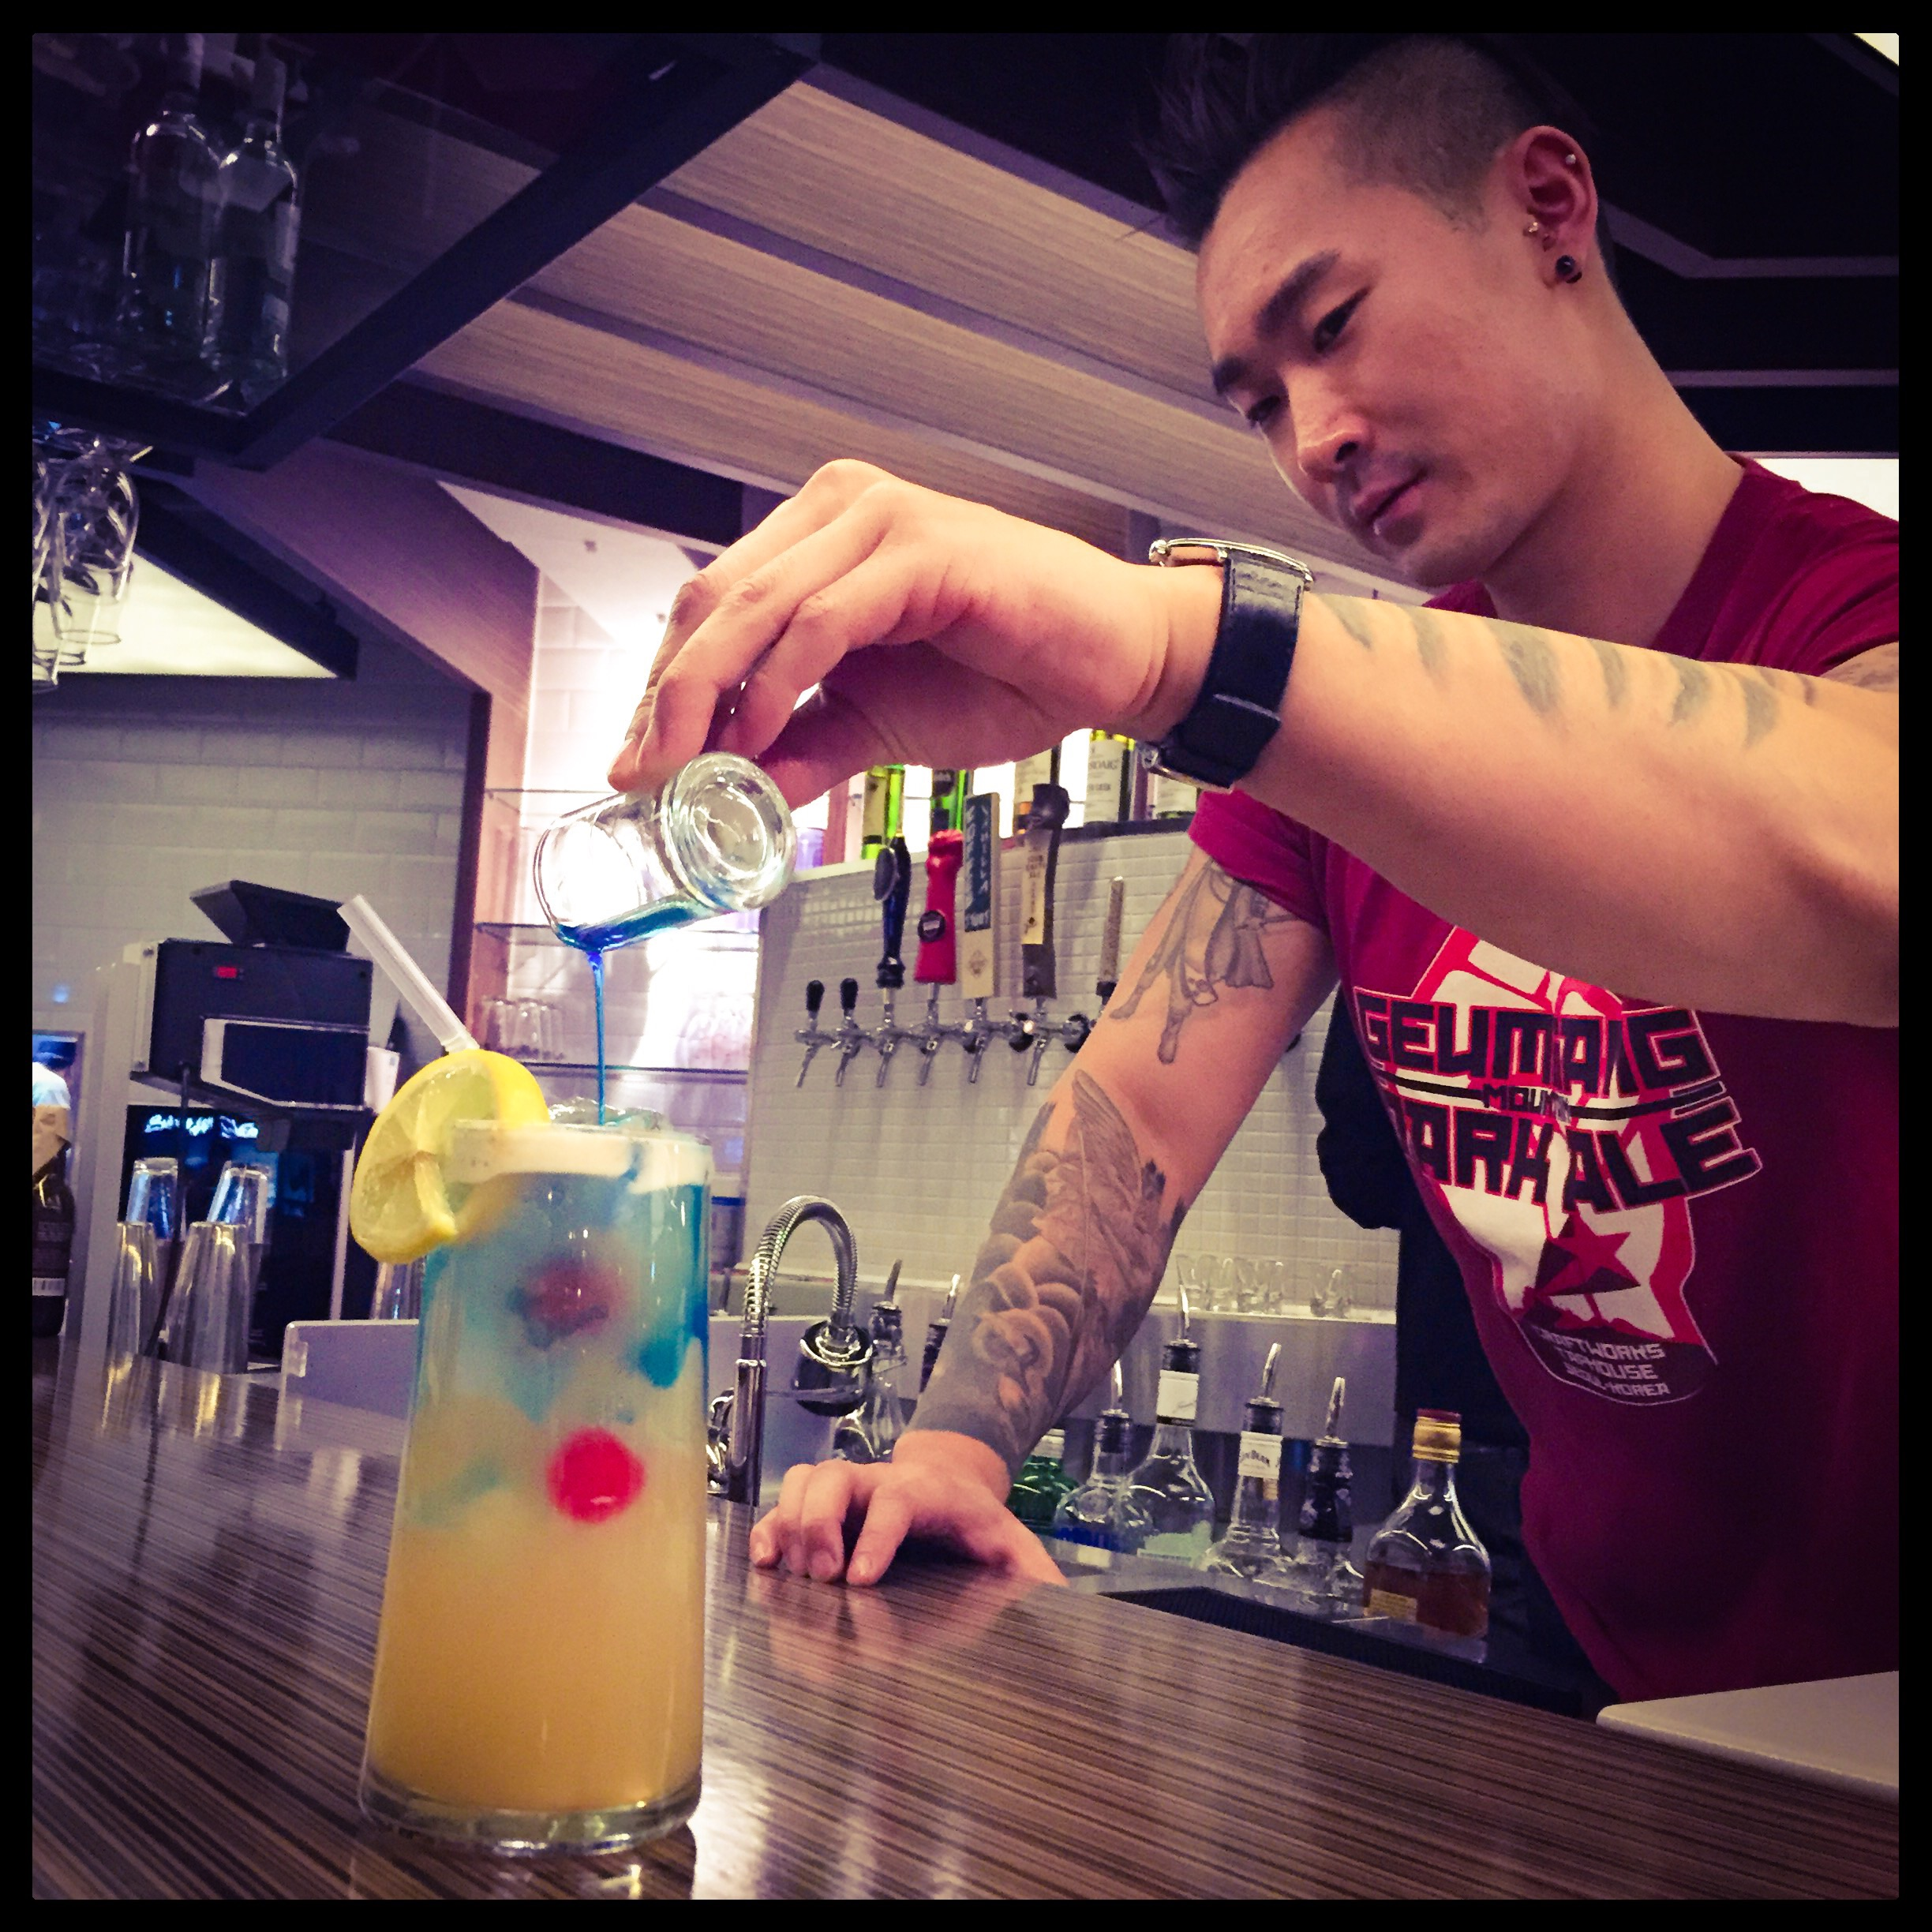 If beers don't tickle your fancy, Fredik is your man! He can make one of the SIGNATURE COCKTAILS that are on the menu for you, or even whip up a custom made one for you! This one pictured is an off-menu drink, but if you ask for a BLUE TATOO (we named it inspired by Fredik's tatoos!). It is very sweet, sour and has a nice punch to it if you are looking for a refreshing tropical kind of drink!